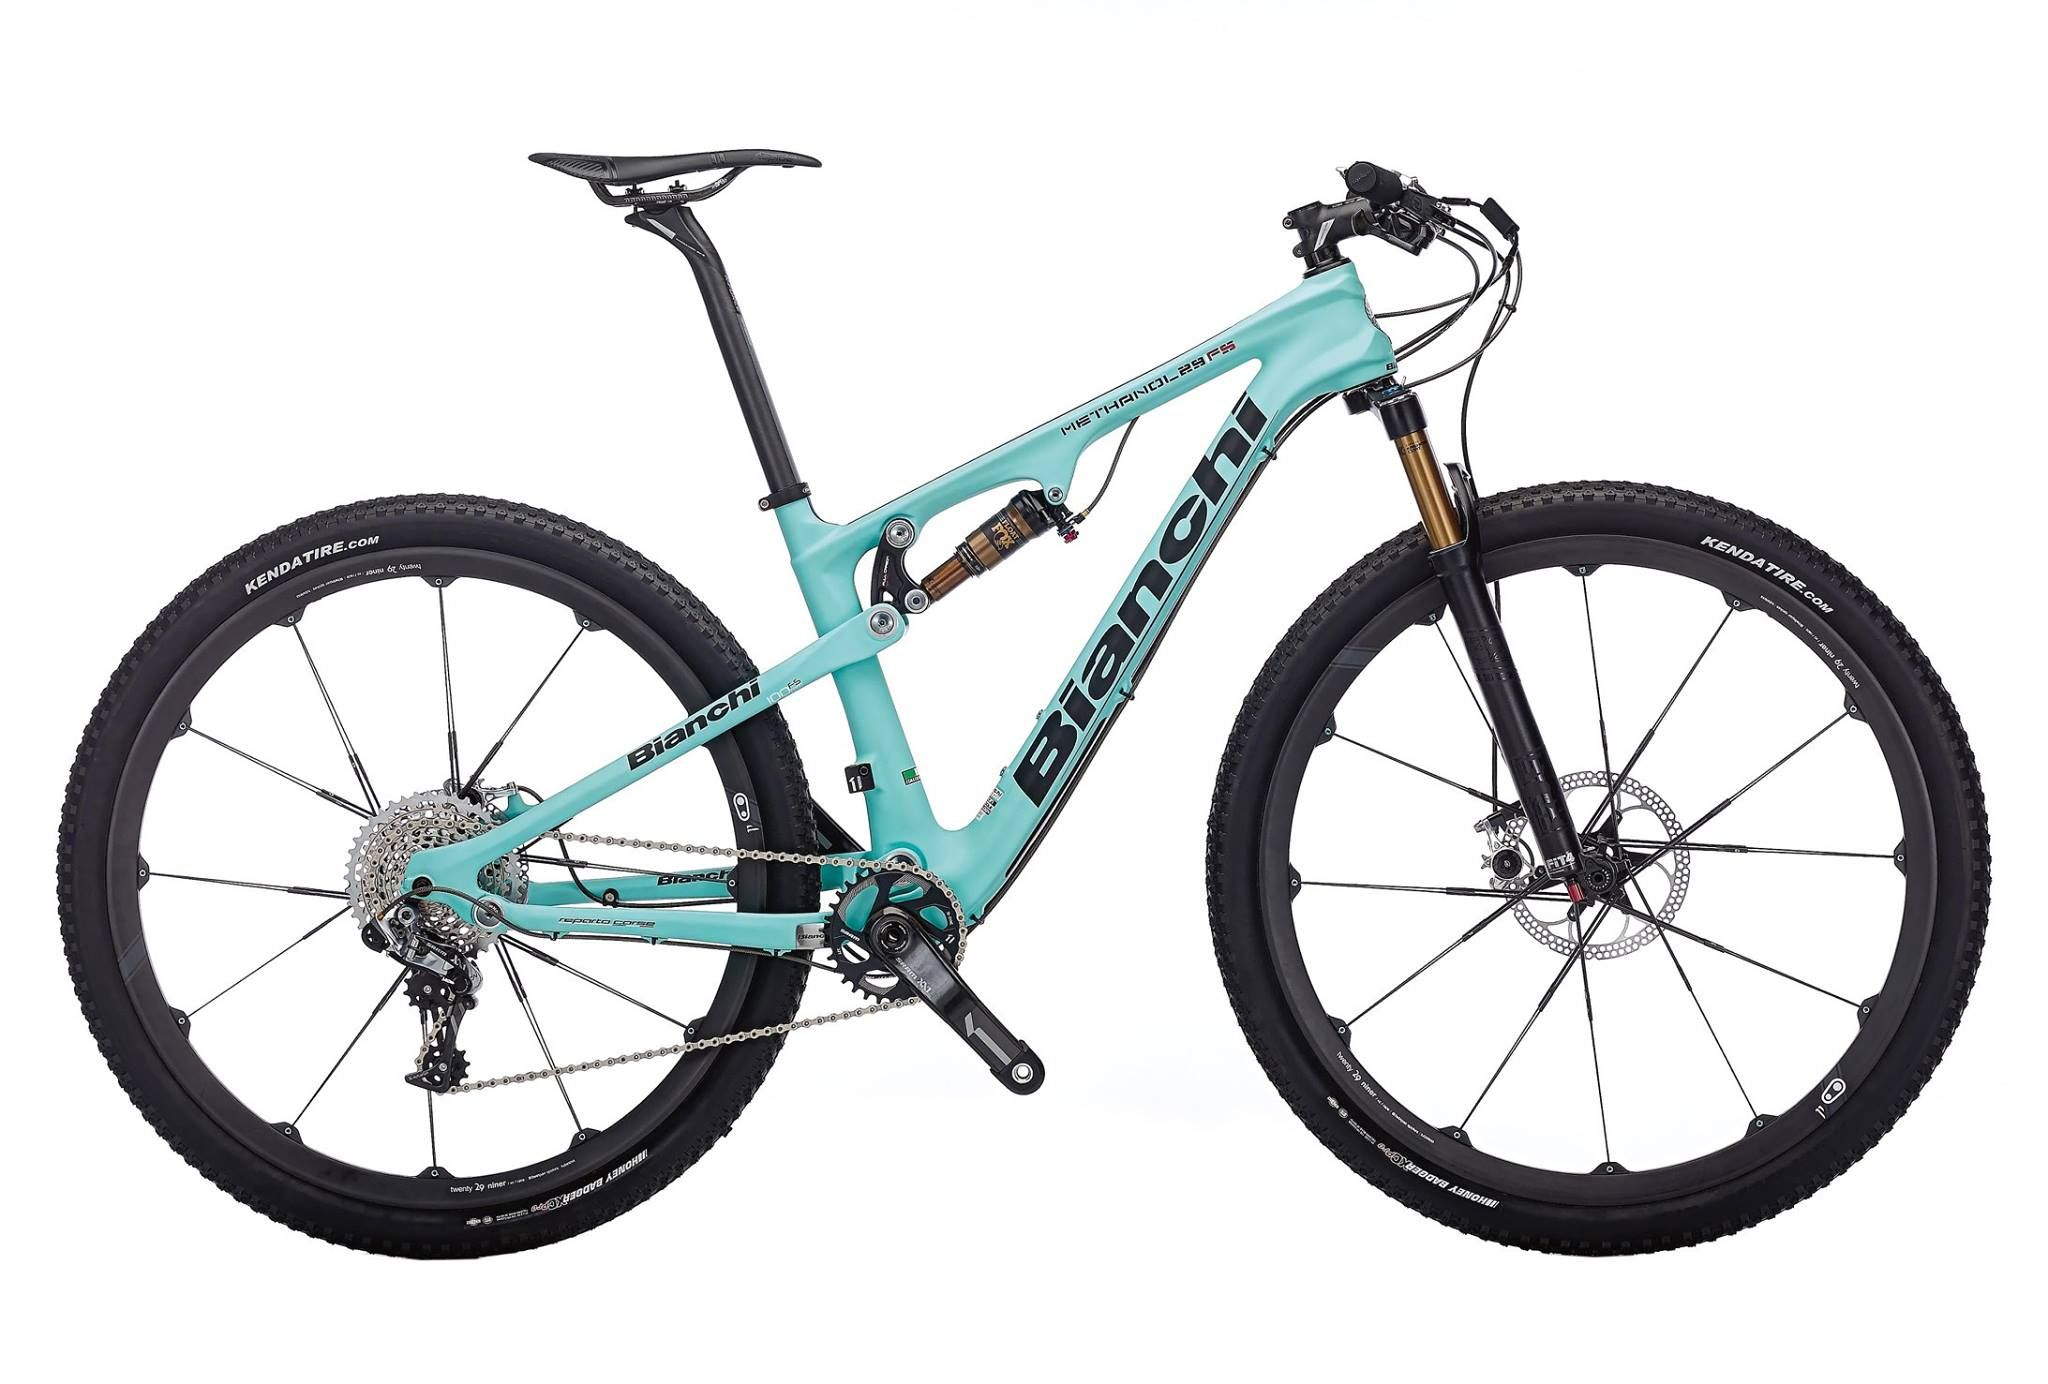 Methanol Full Suspension Mtb Mountain Biking Bike